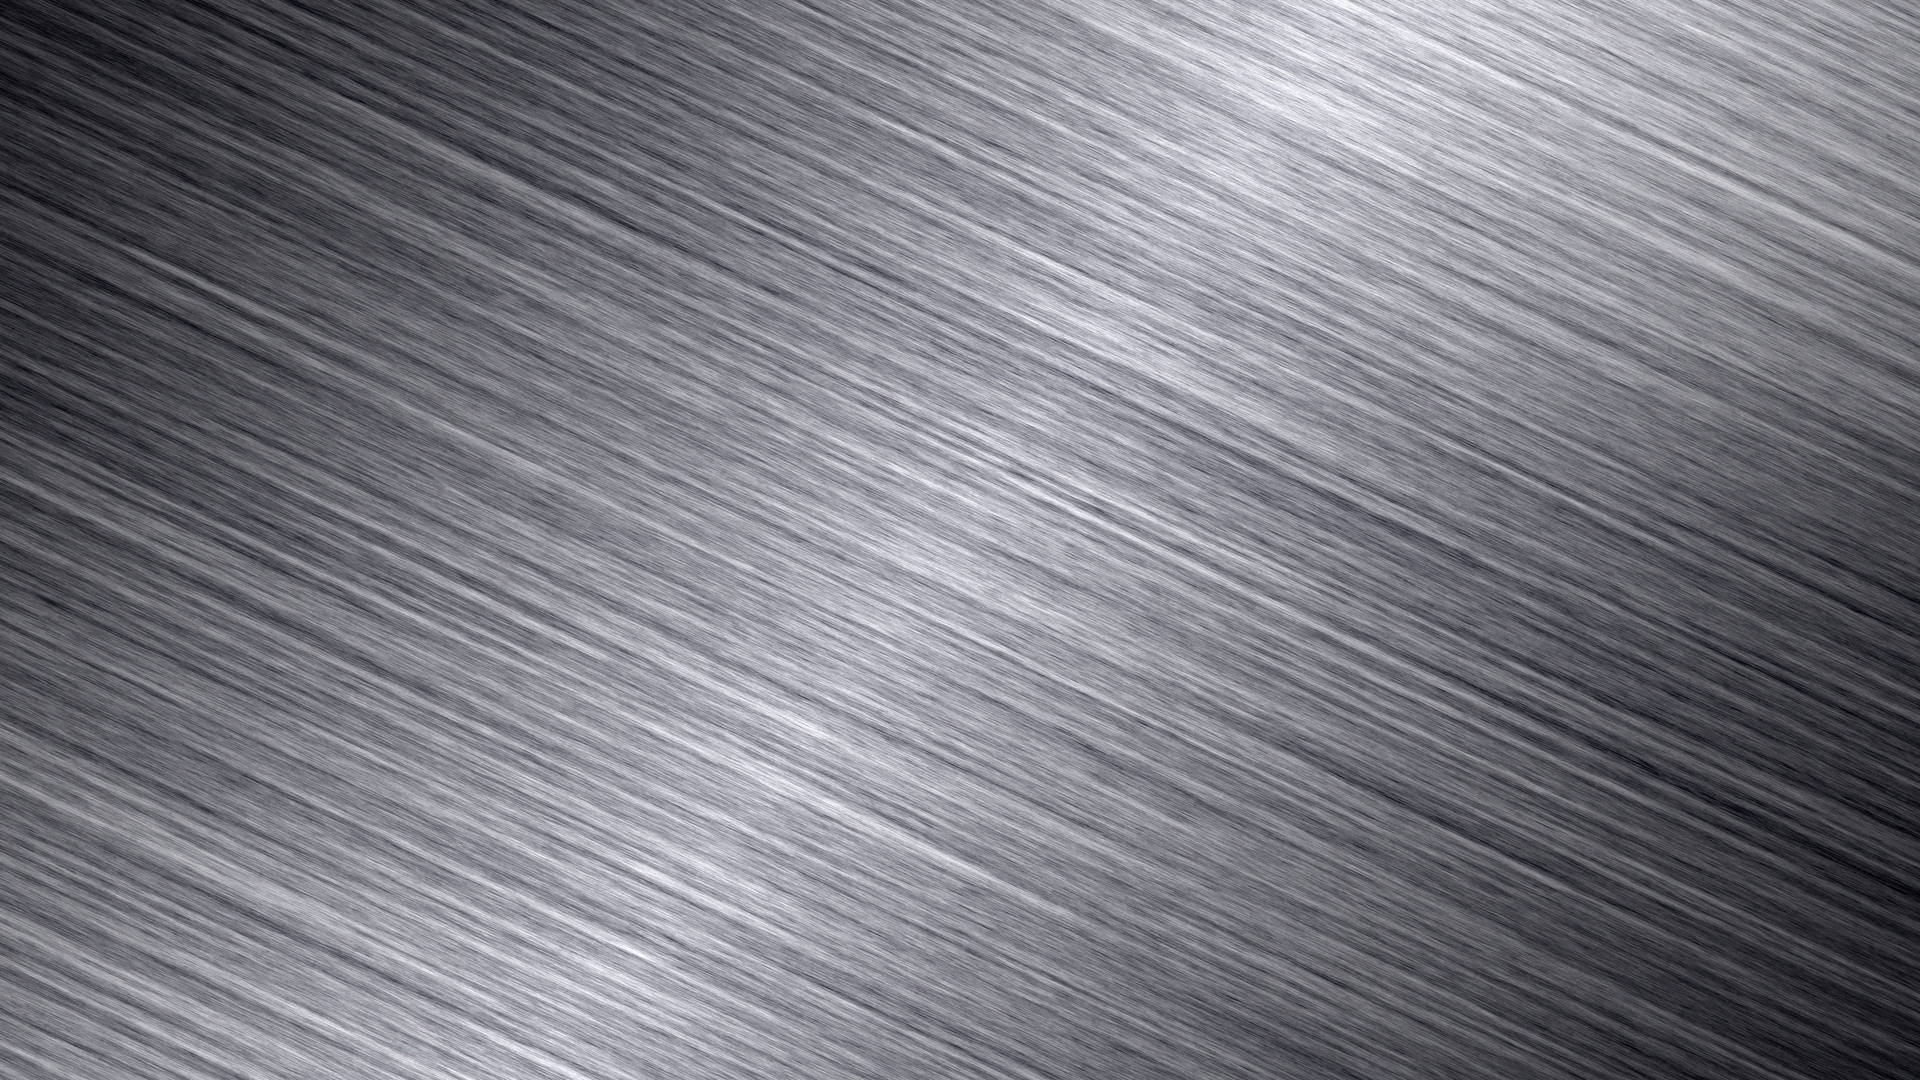 line-background-surface-strips-texture-1920x1080-1920×1080-wallpaper-wp3408142